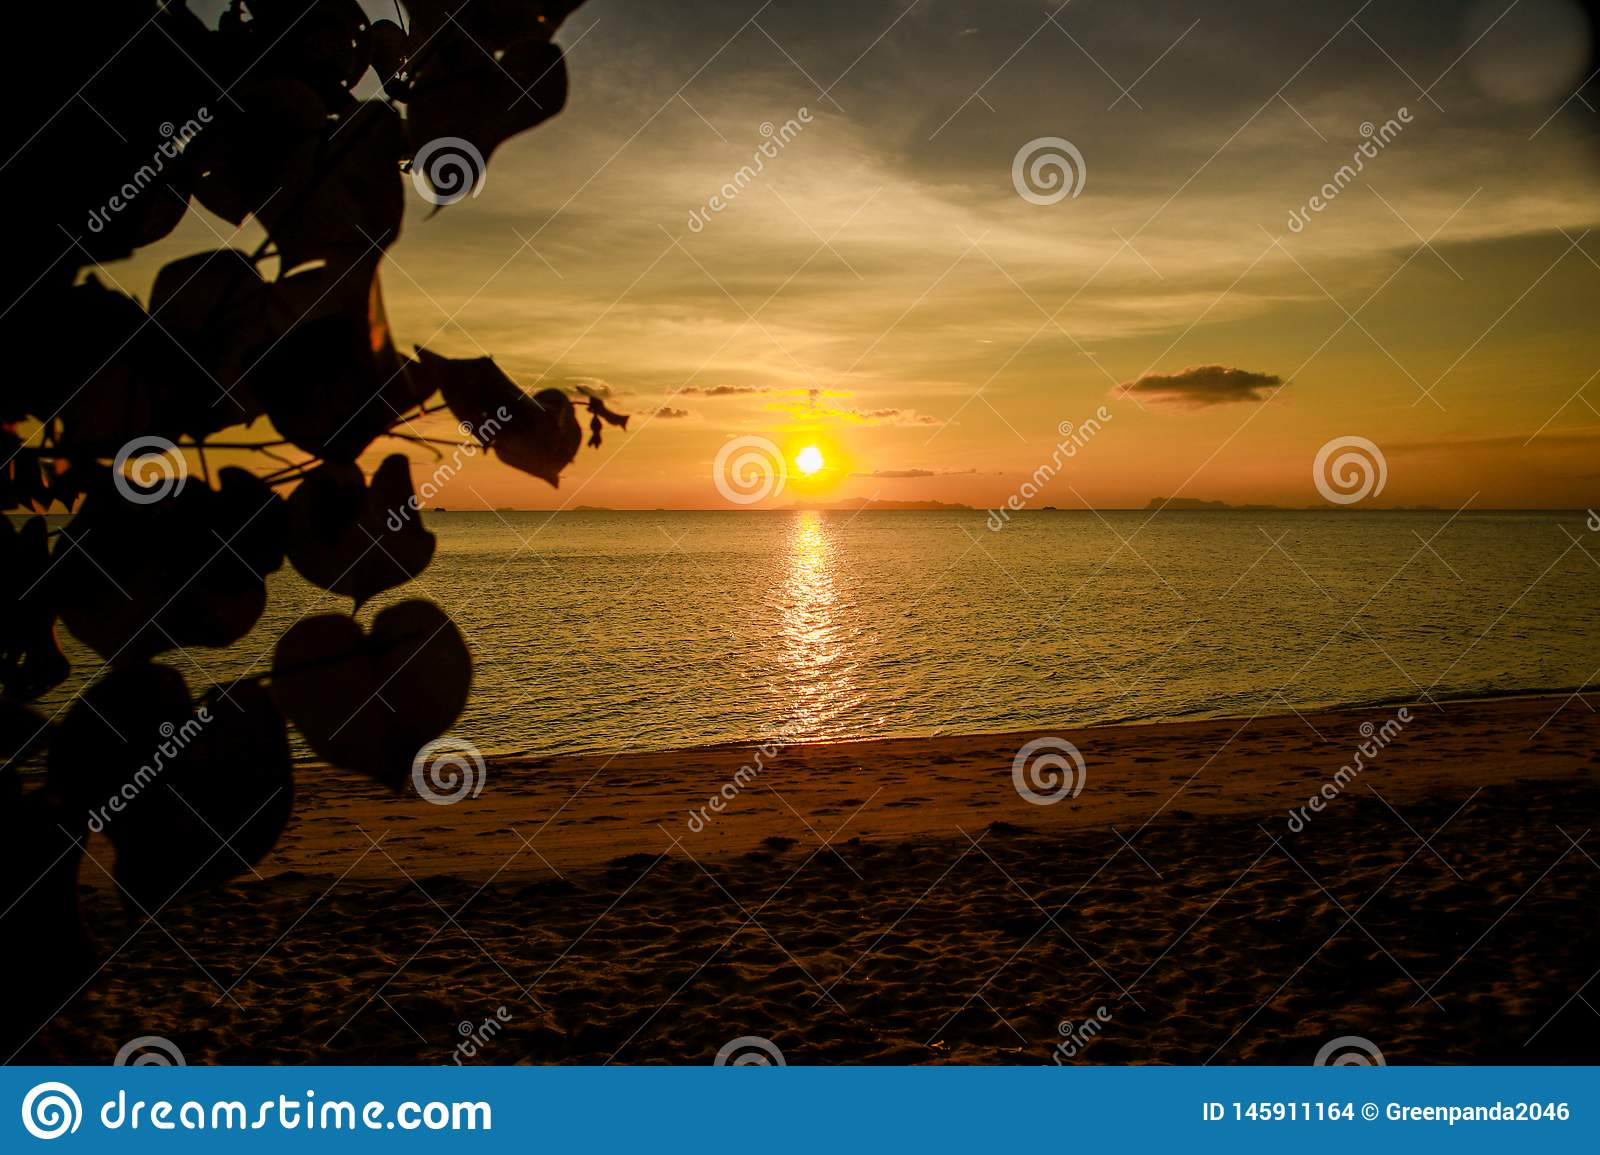 Tropical sunset beach. Beautiful background